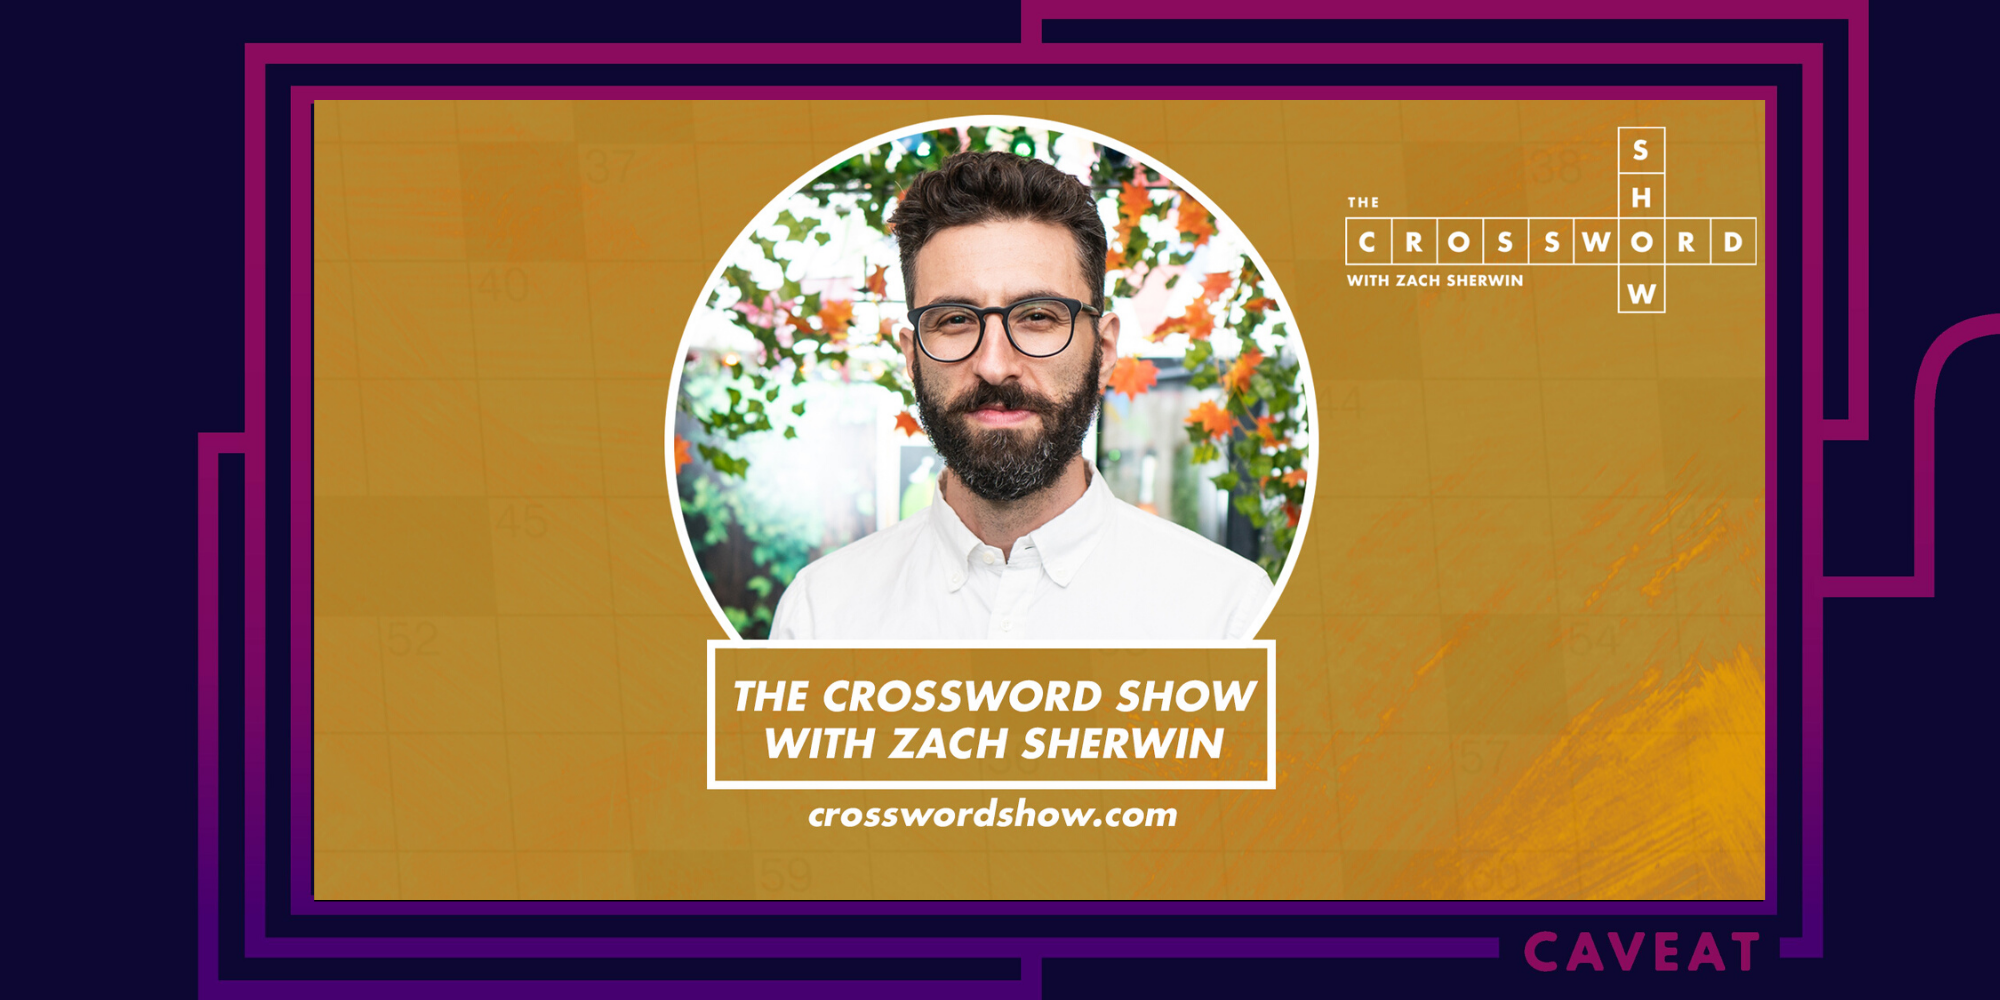 2668 image - The Crossword Show with Zach Sherwin